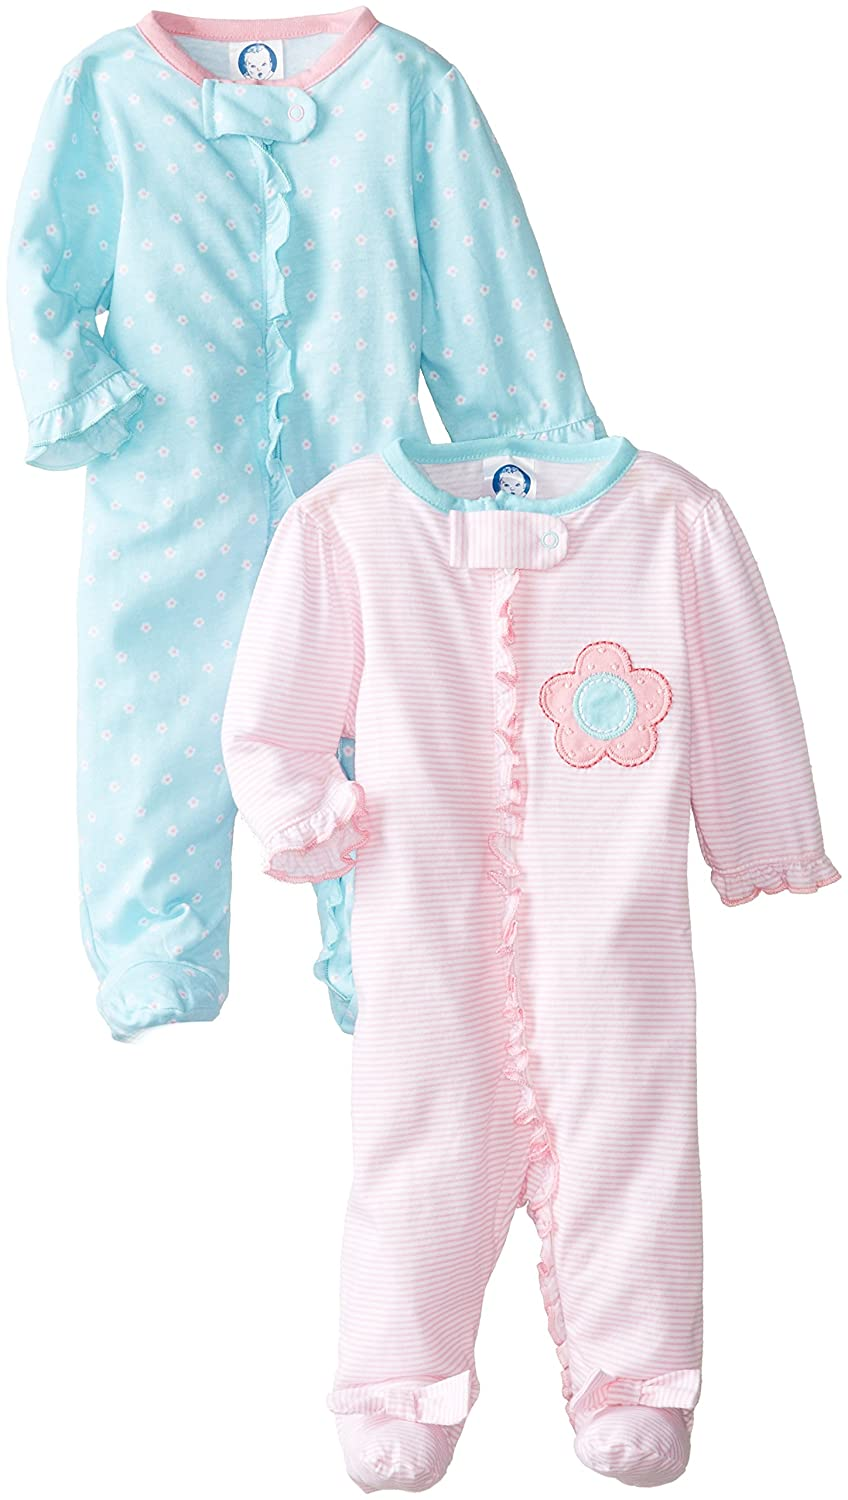 無料発送 Gerber - SLEEPWEAR Gerber ベビーガールズ B00KF3C78A フラワー 0 - - 3 Months 0 - 3 Months|フラワー, 名栗村:8c697b56 --- martinemoeykens-com.access.secure-ssl-servers.info